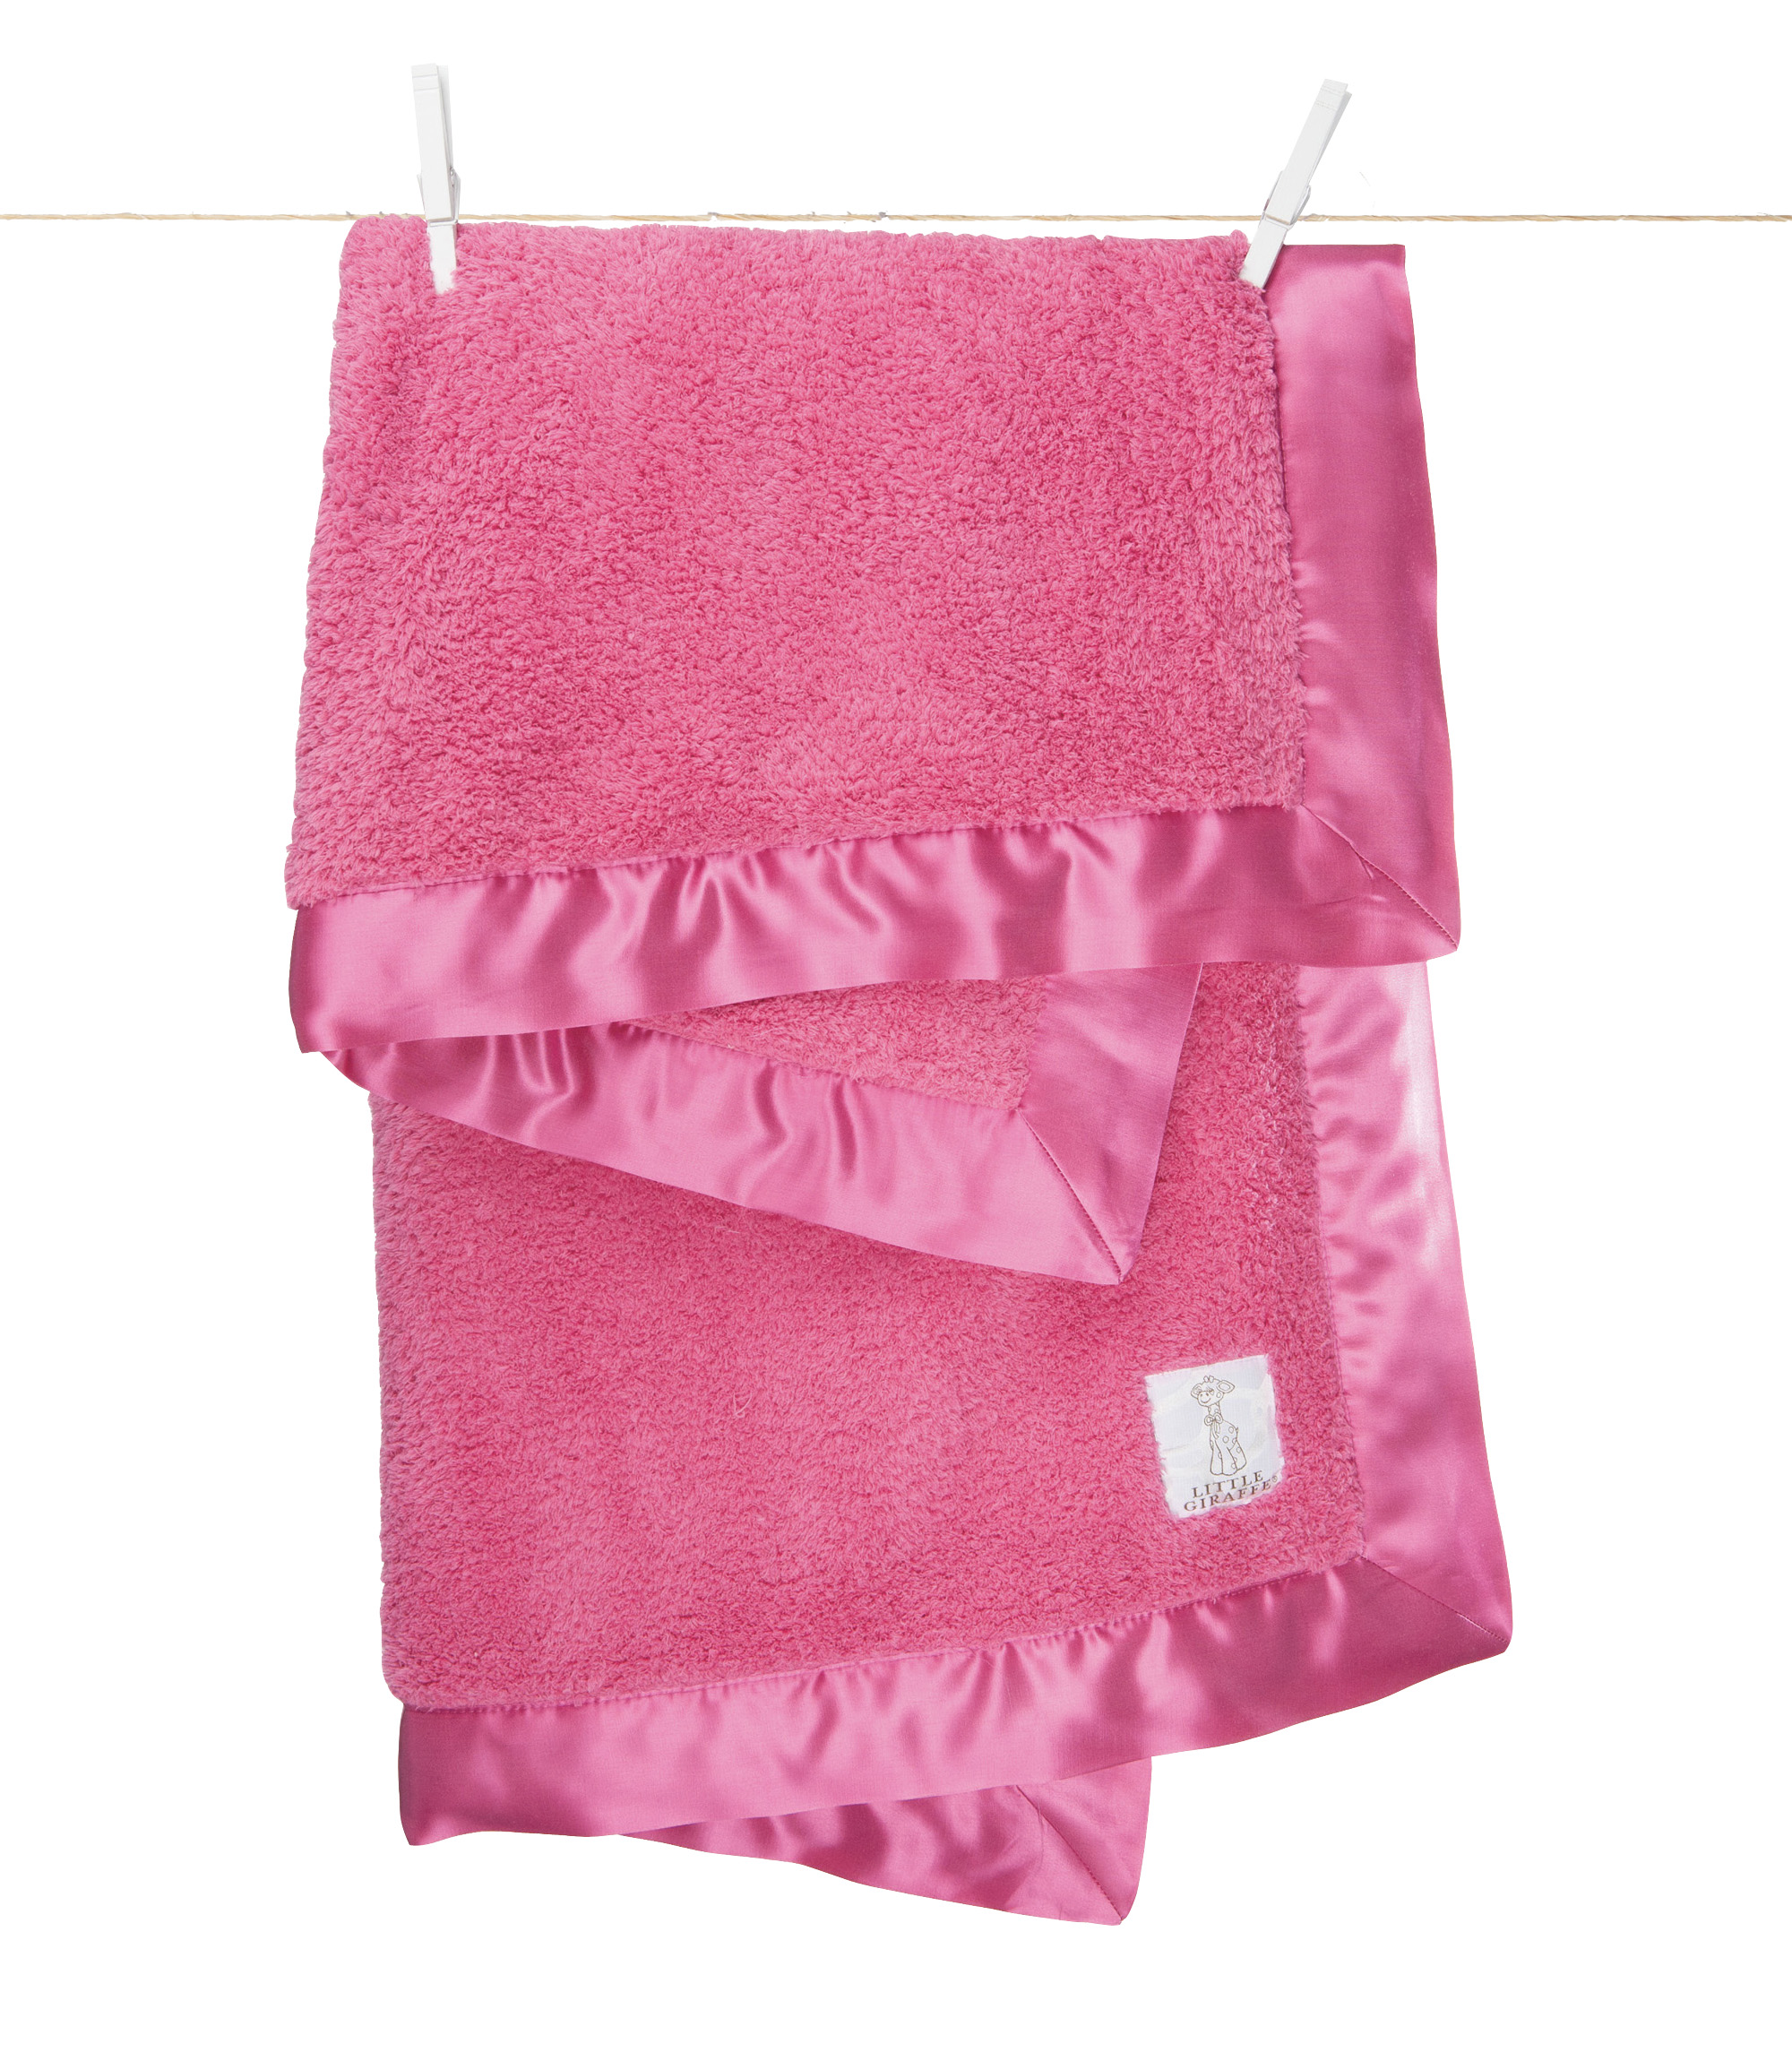 chenille blanket baby in pink for bedding accessories ideas